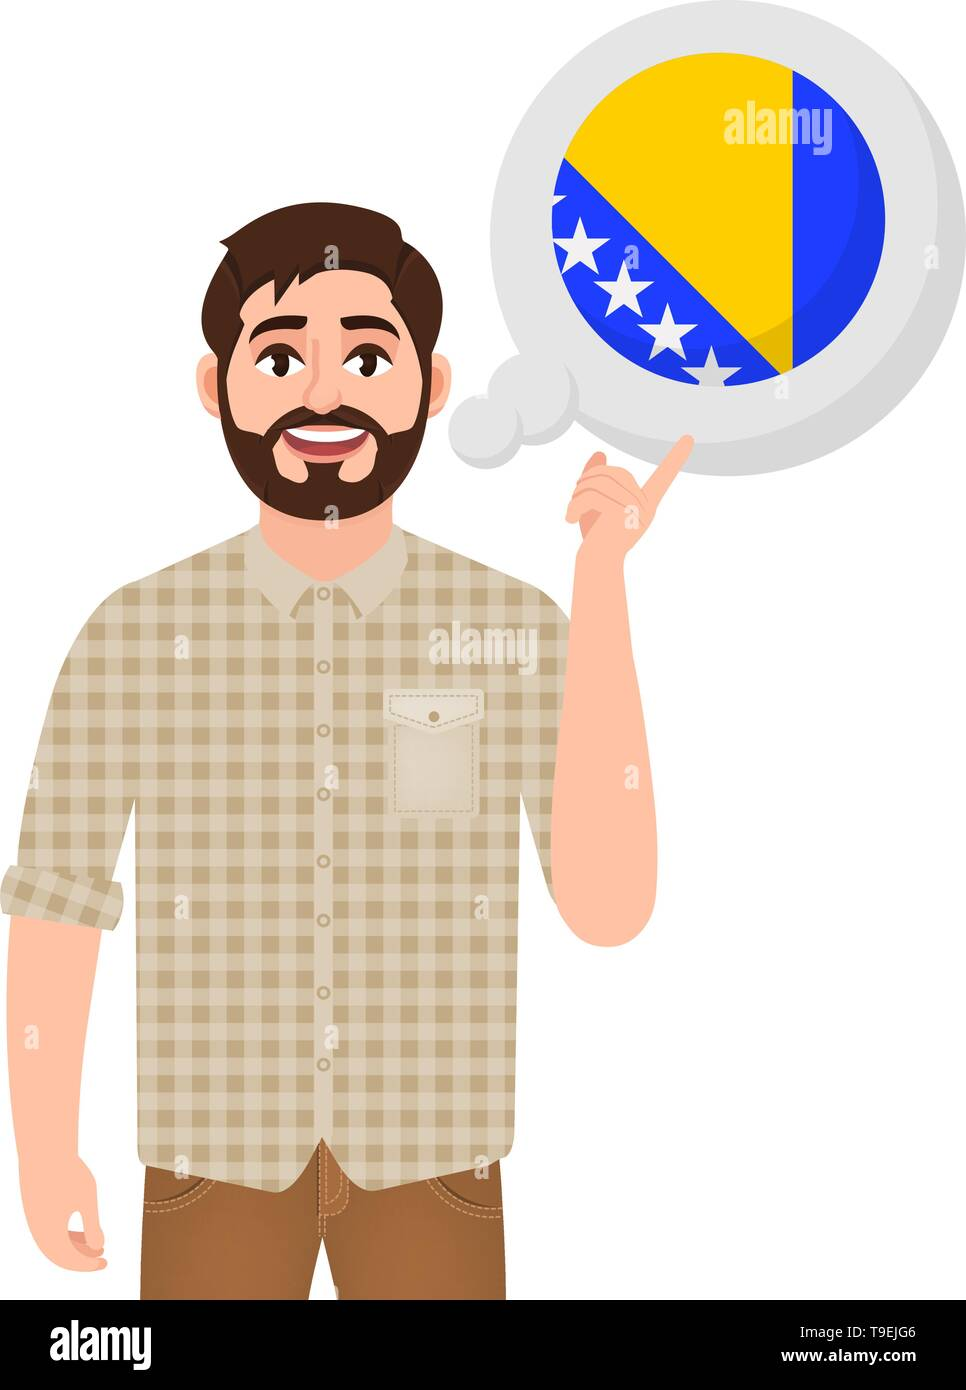 Happy bearded man says or thinks about the country Bosnia and Herzegovina, European country icon, traveler or tourist vector illustration - Stock Image